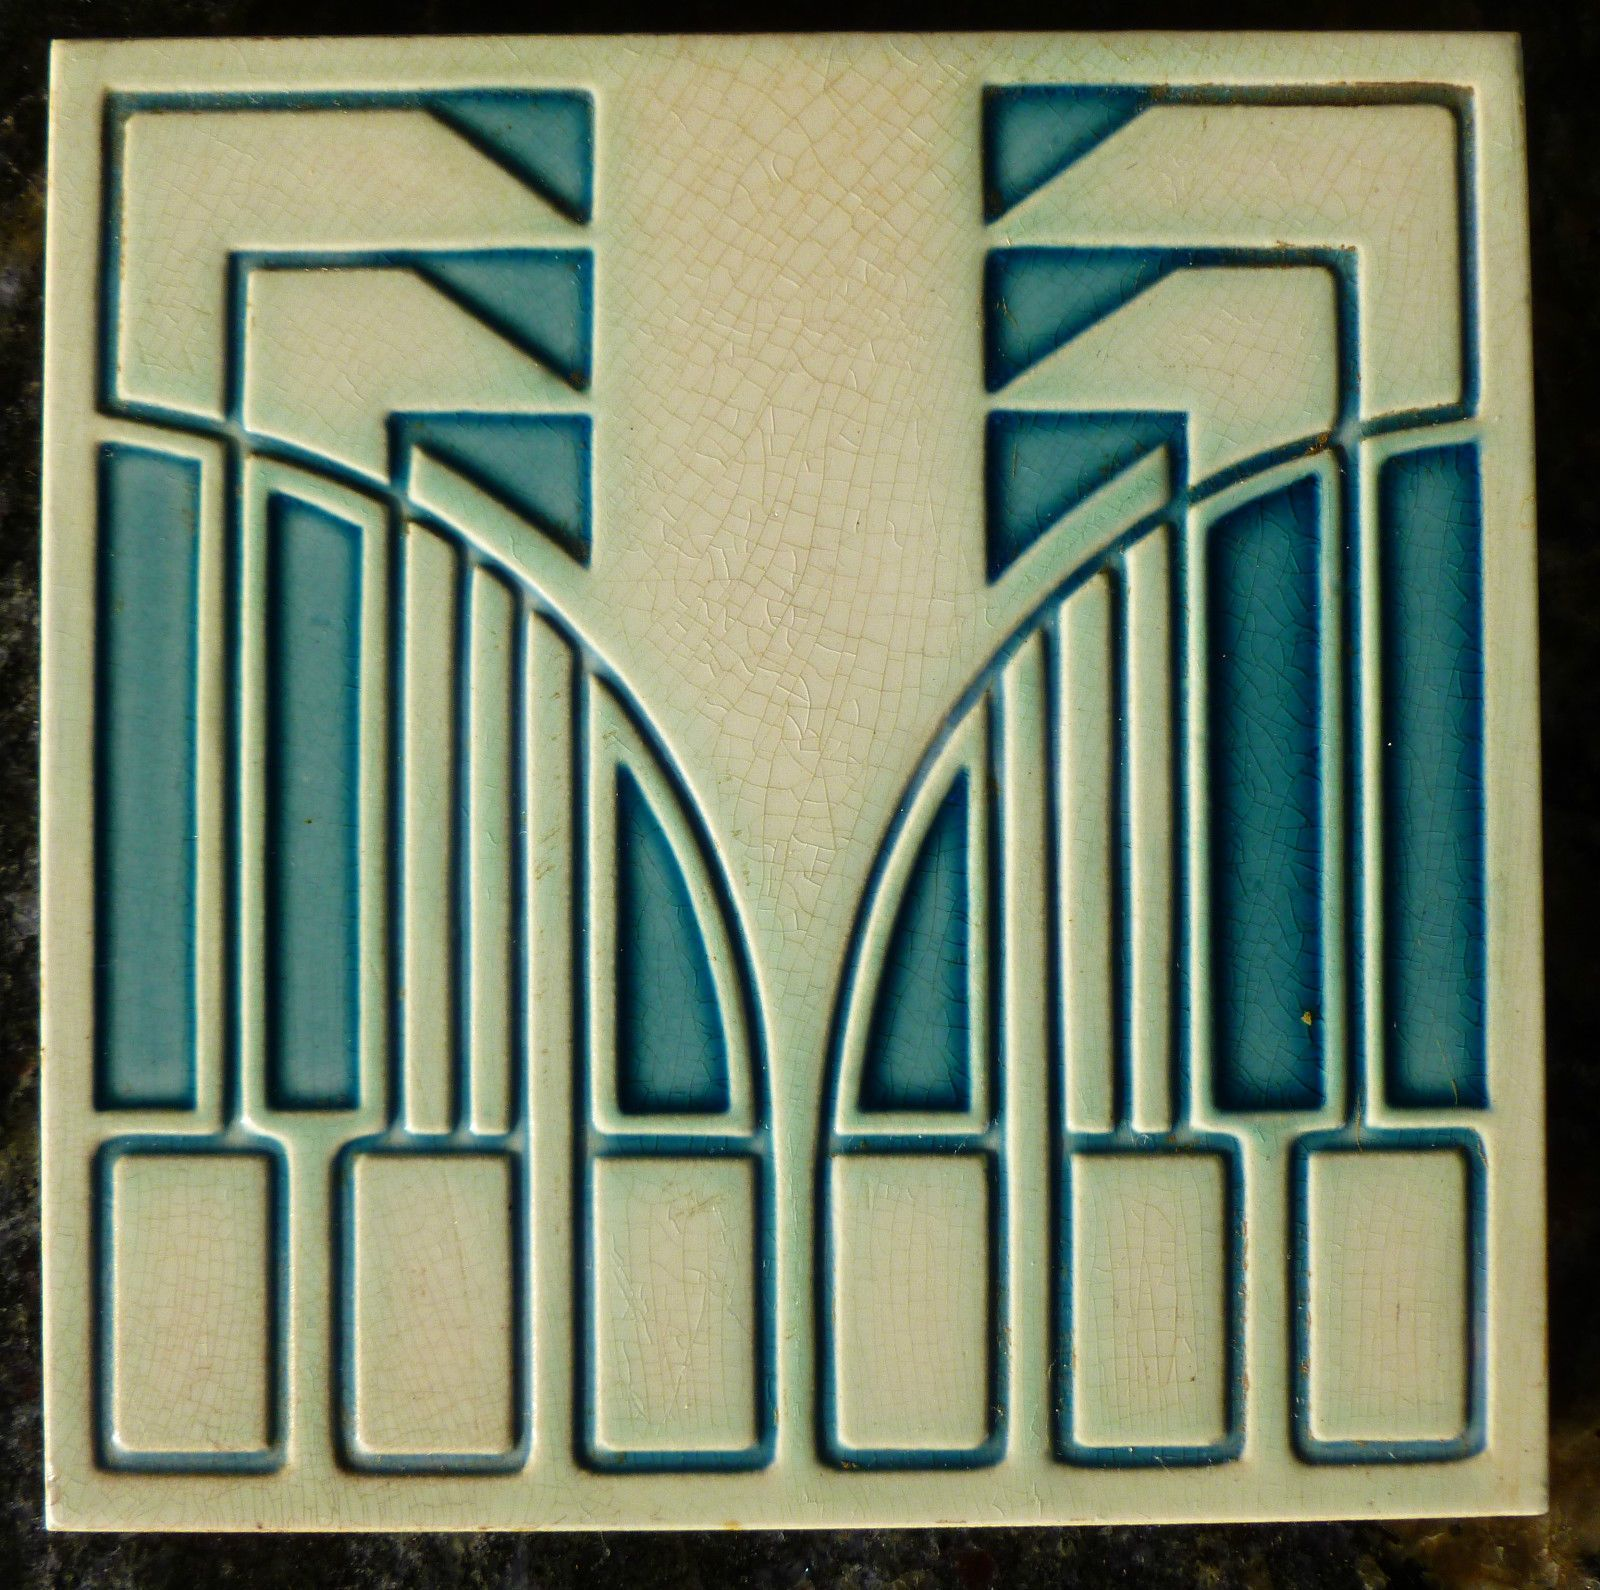 Pin by Beth Marsh on Art Deco & Art Nouveau - Tiles, drawings, vases ...